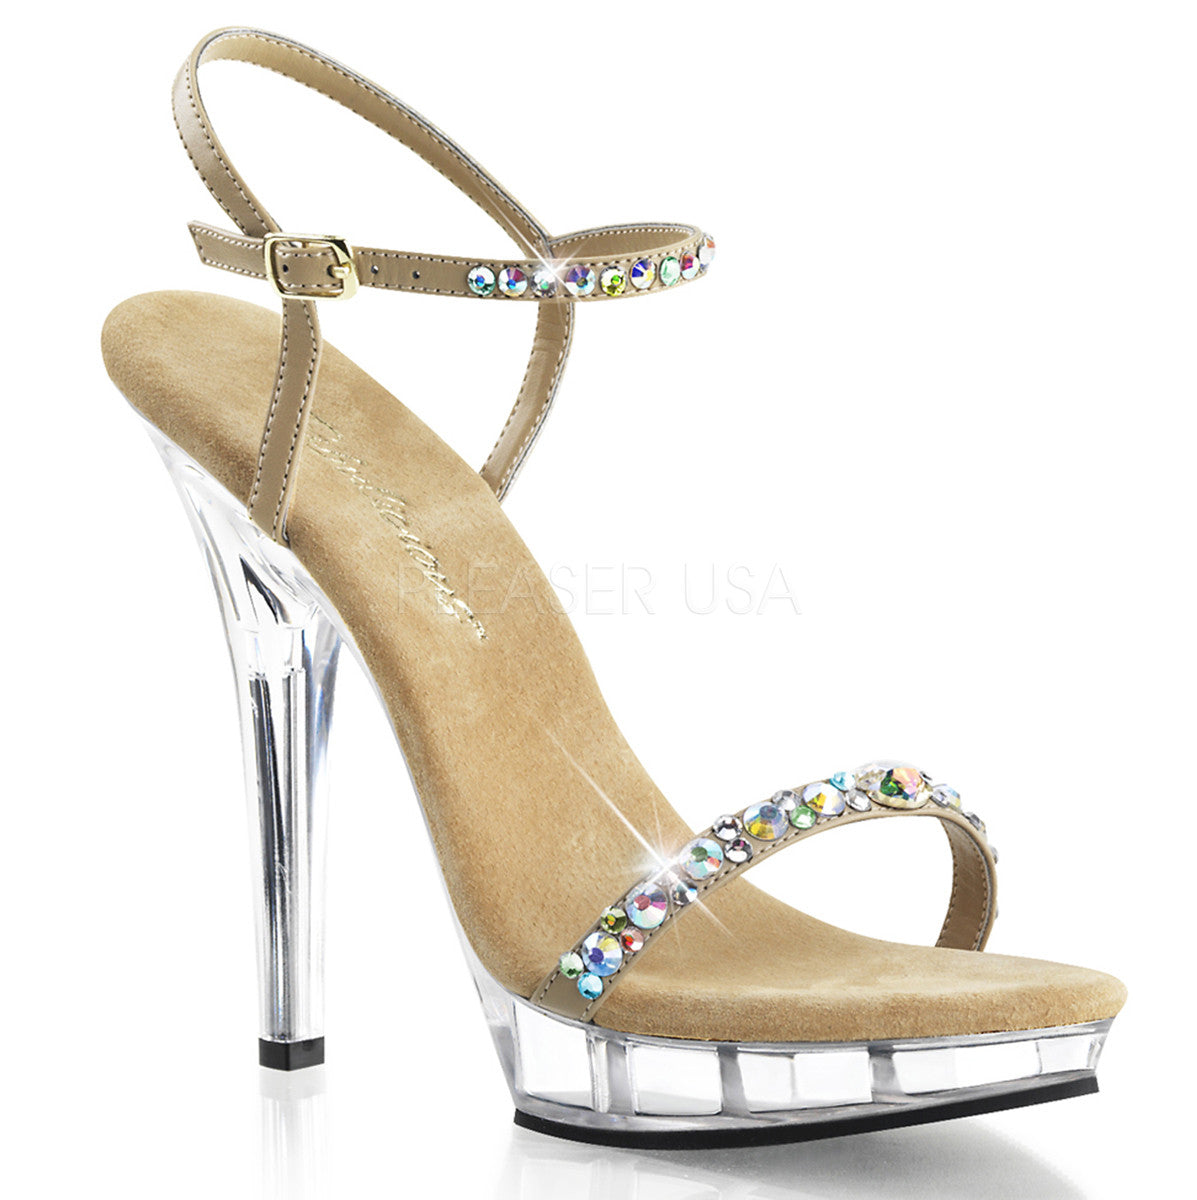 FABULICIOUS LIP-131 Taupe Pu-Clear Ankle Strap Sandals - Shoecup.com